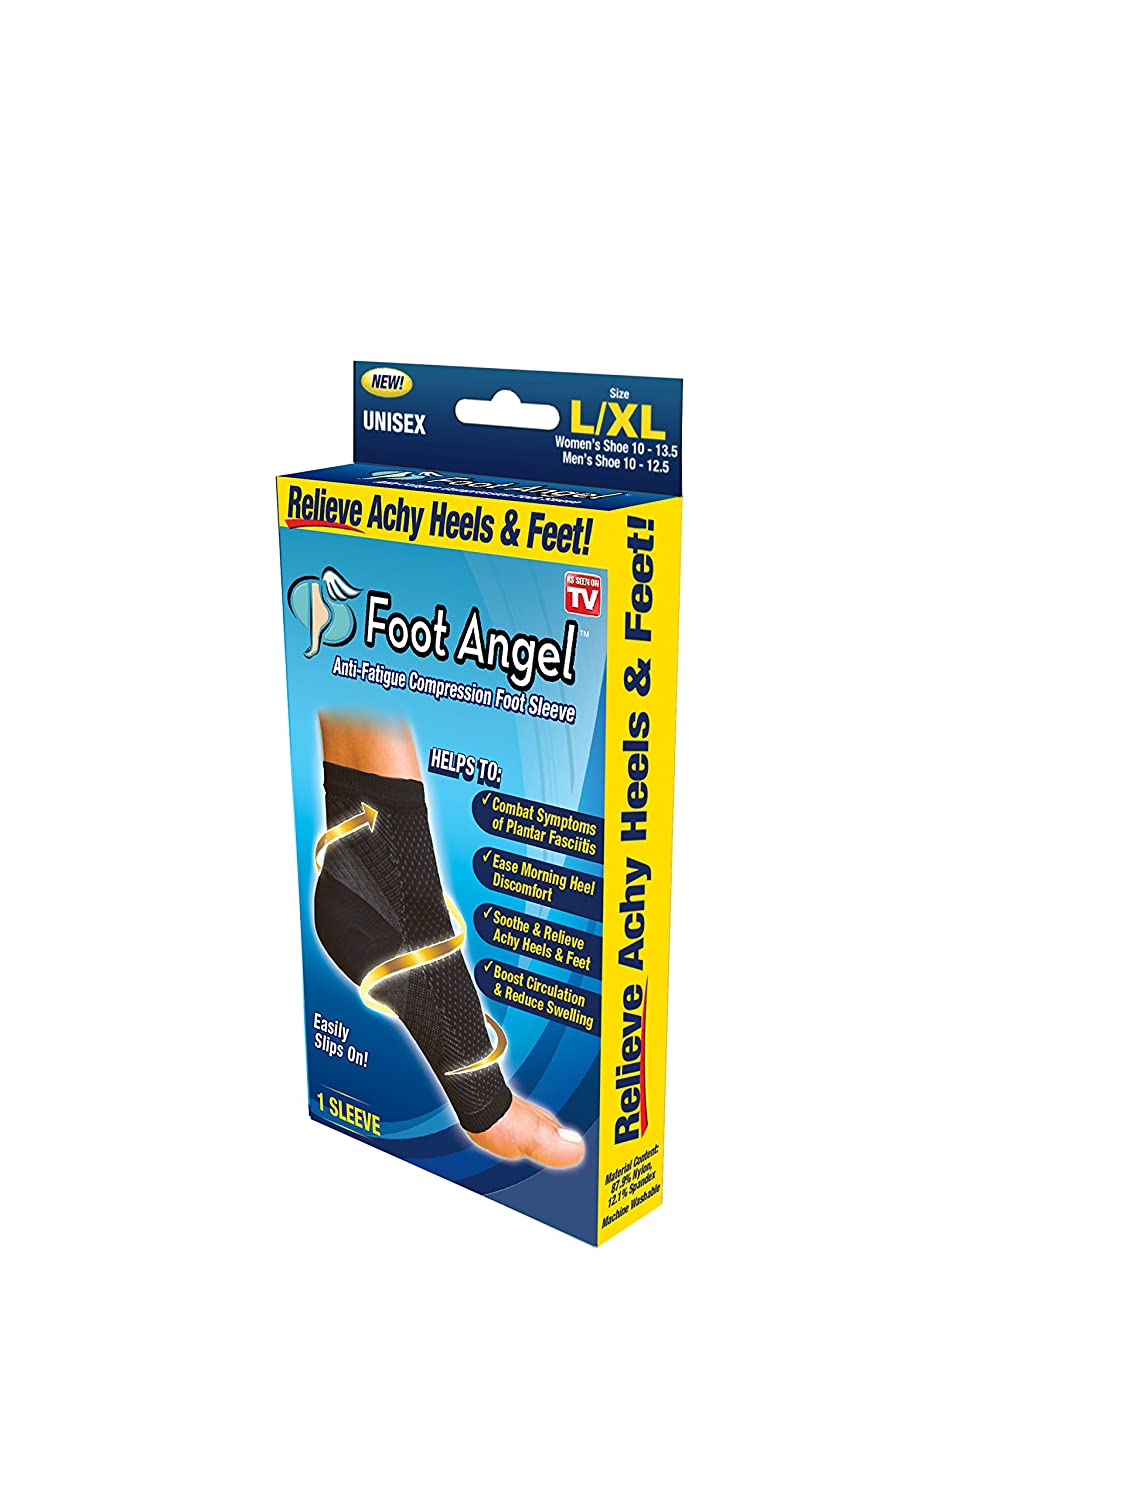 Amazon.com: Foot Angel Anti-Fatigue Compression Foot Sleeve for Plantar Fasciitis Relief: Health & Personal Care